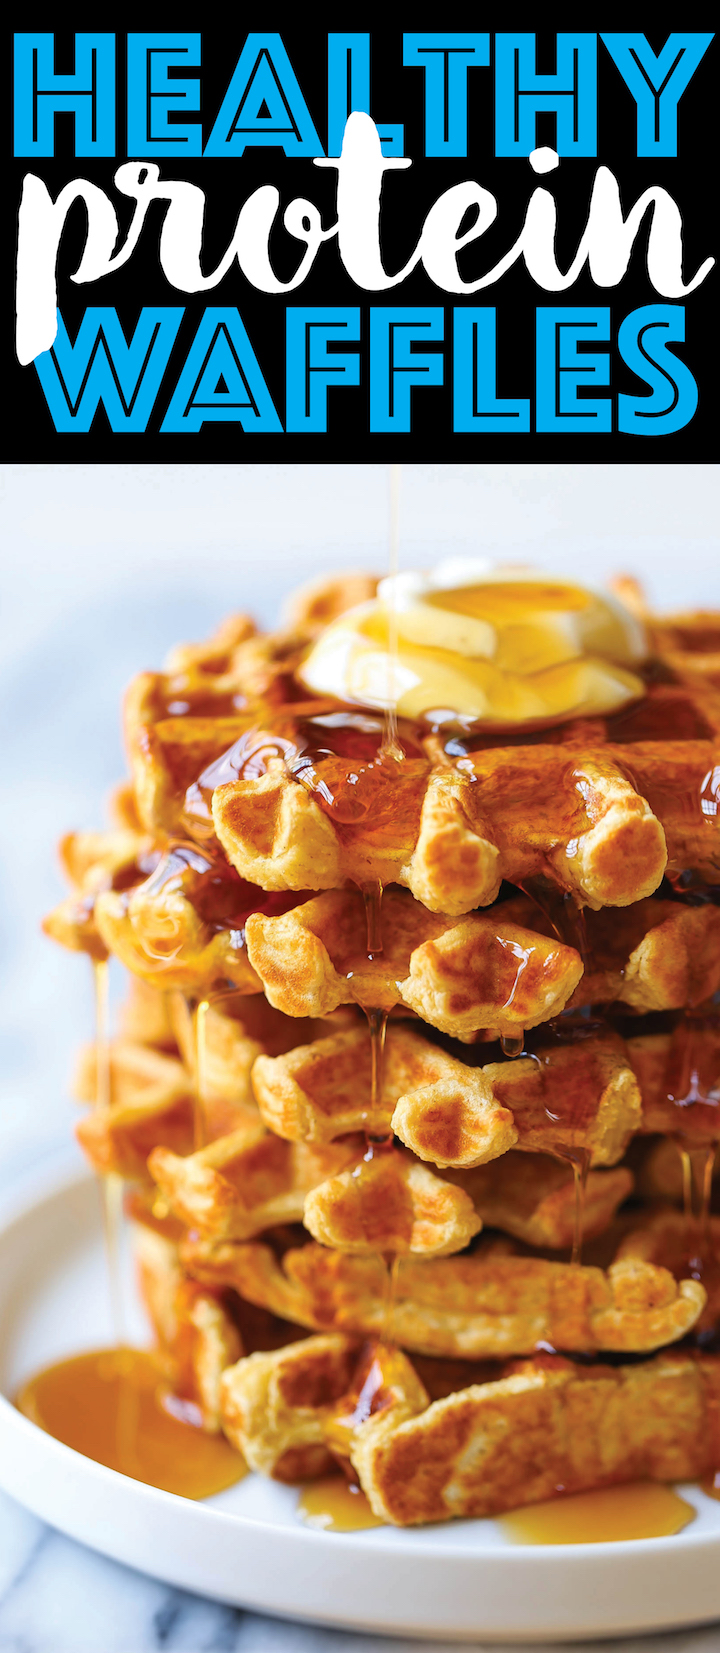 Healthy Protein Waffles - Start your day right with these freezer-friendly waffles made right in a blender! So filling with 276.1 calories and 20g protein!!